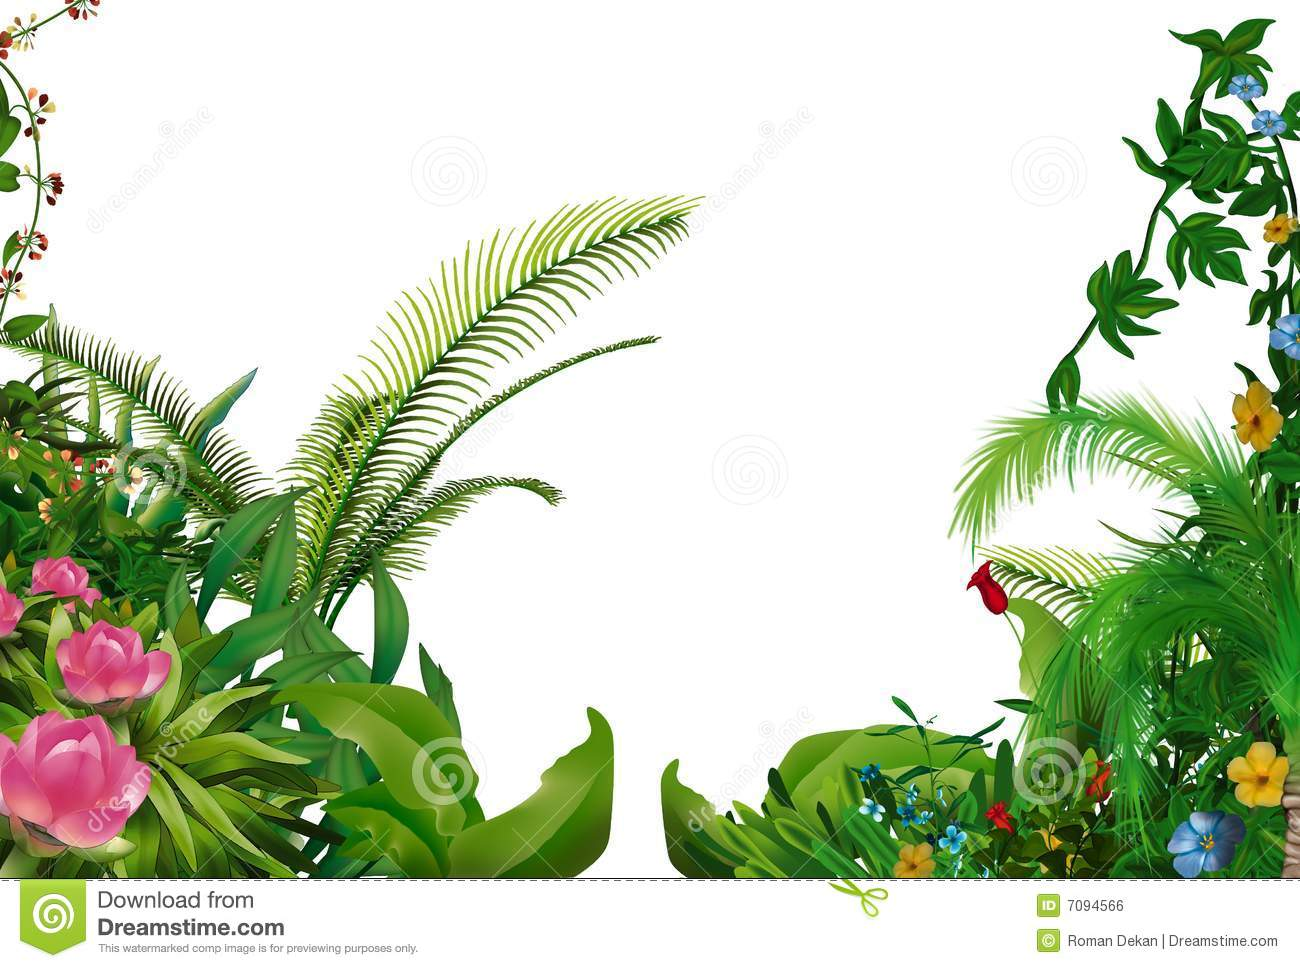 Tropical Plants Royalty Free Stock Image.